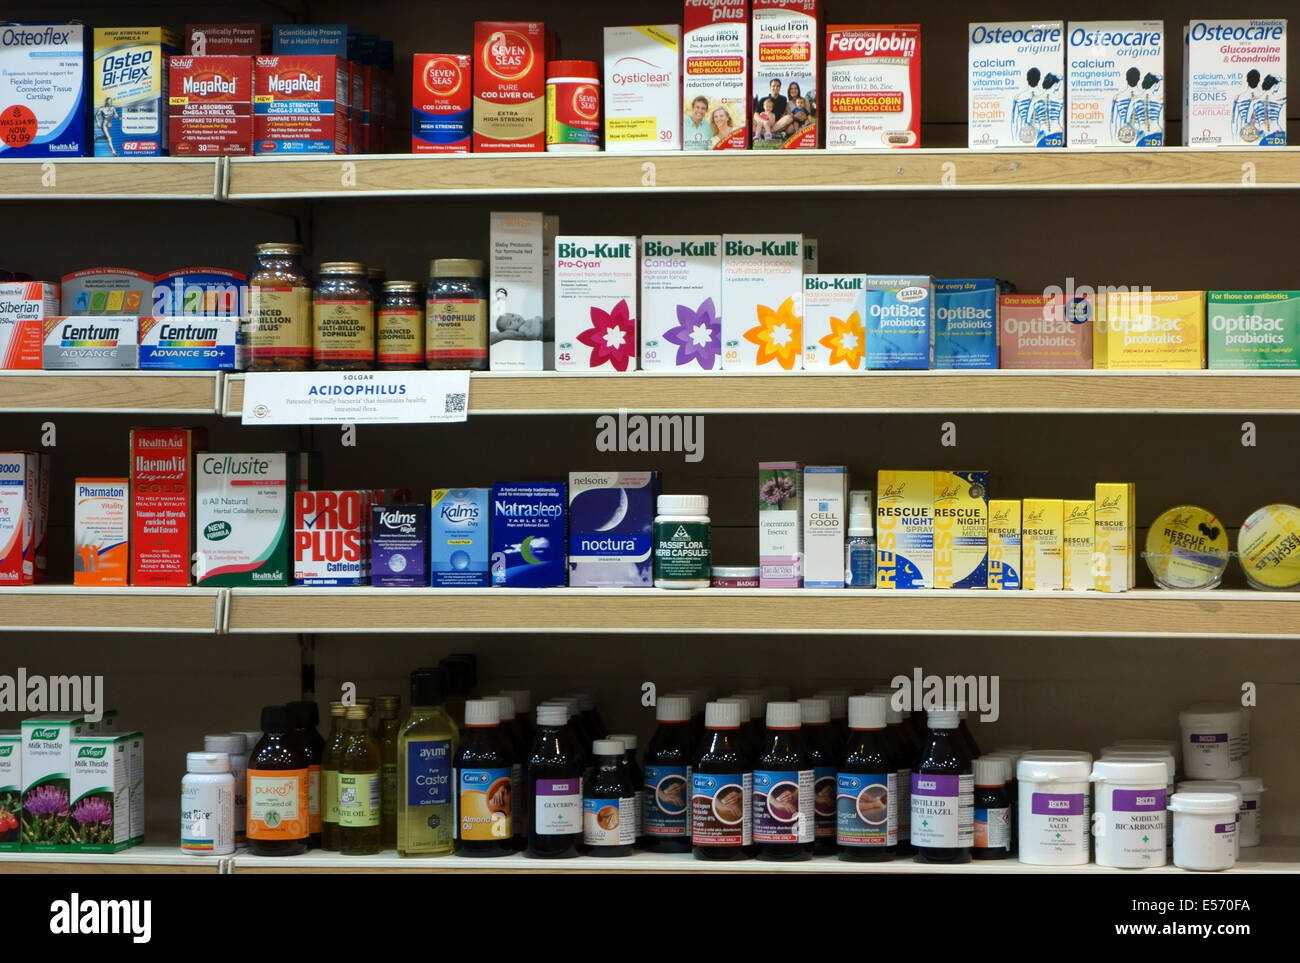 Over-the-counter medicines displayed in London chemists shop - Stock Image